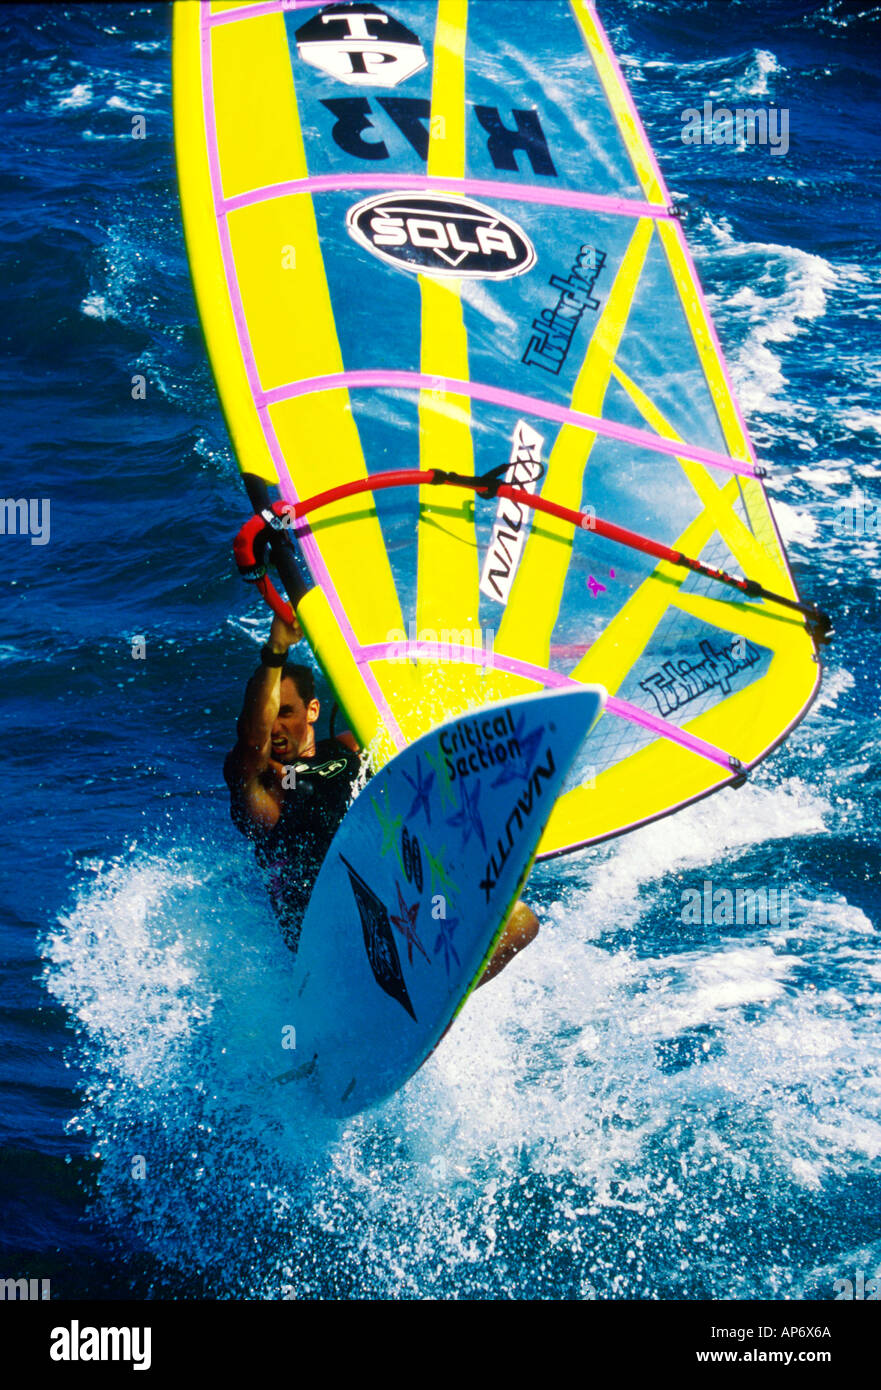 Nigel Howell windsurfing in Tenerife the Canary Islands Spain - Stock Image